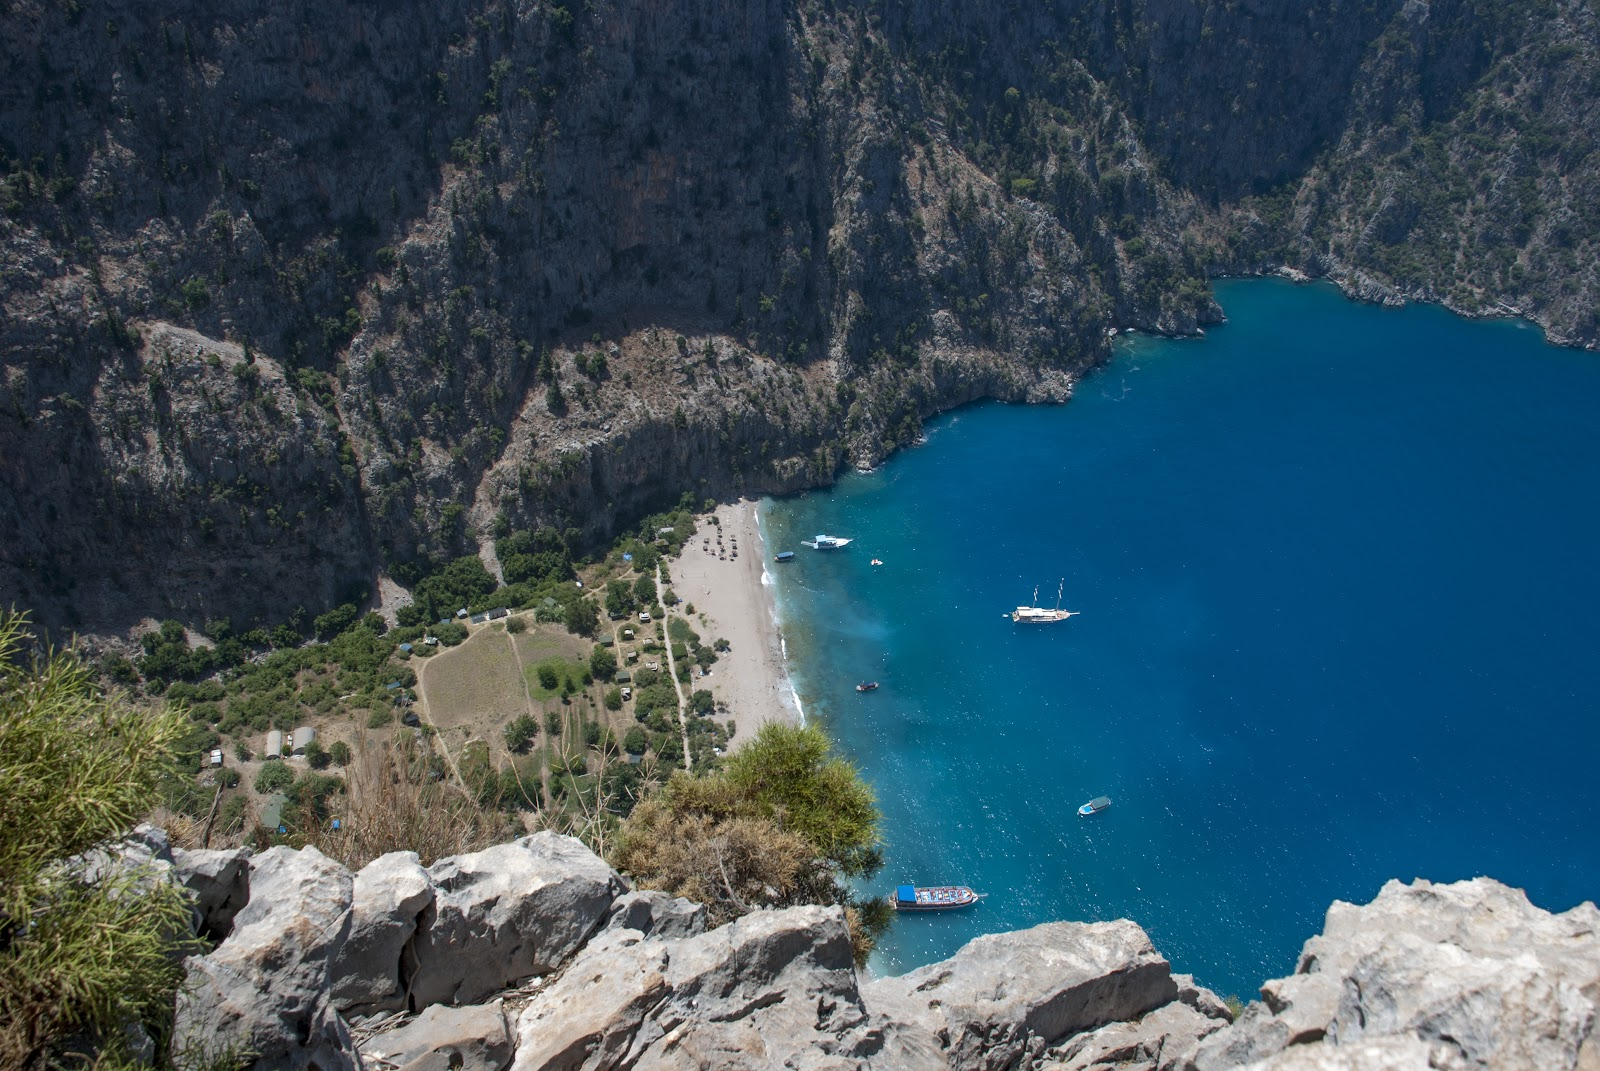 kelebekler vadisi butterfly valley turkey aerial view secluded sandy beach boats turquoise sea turkey riviera